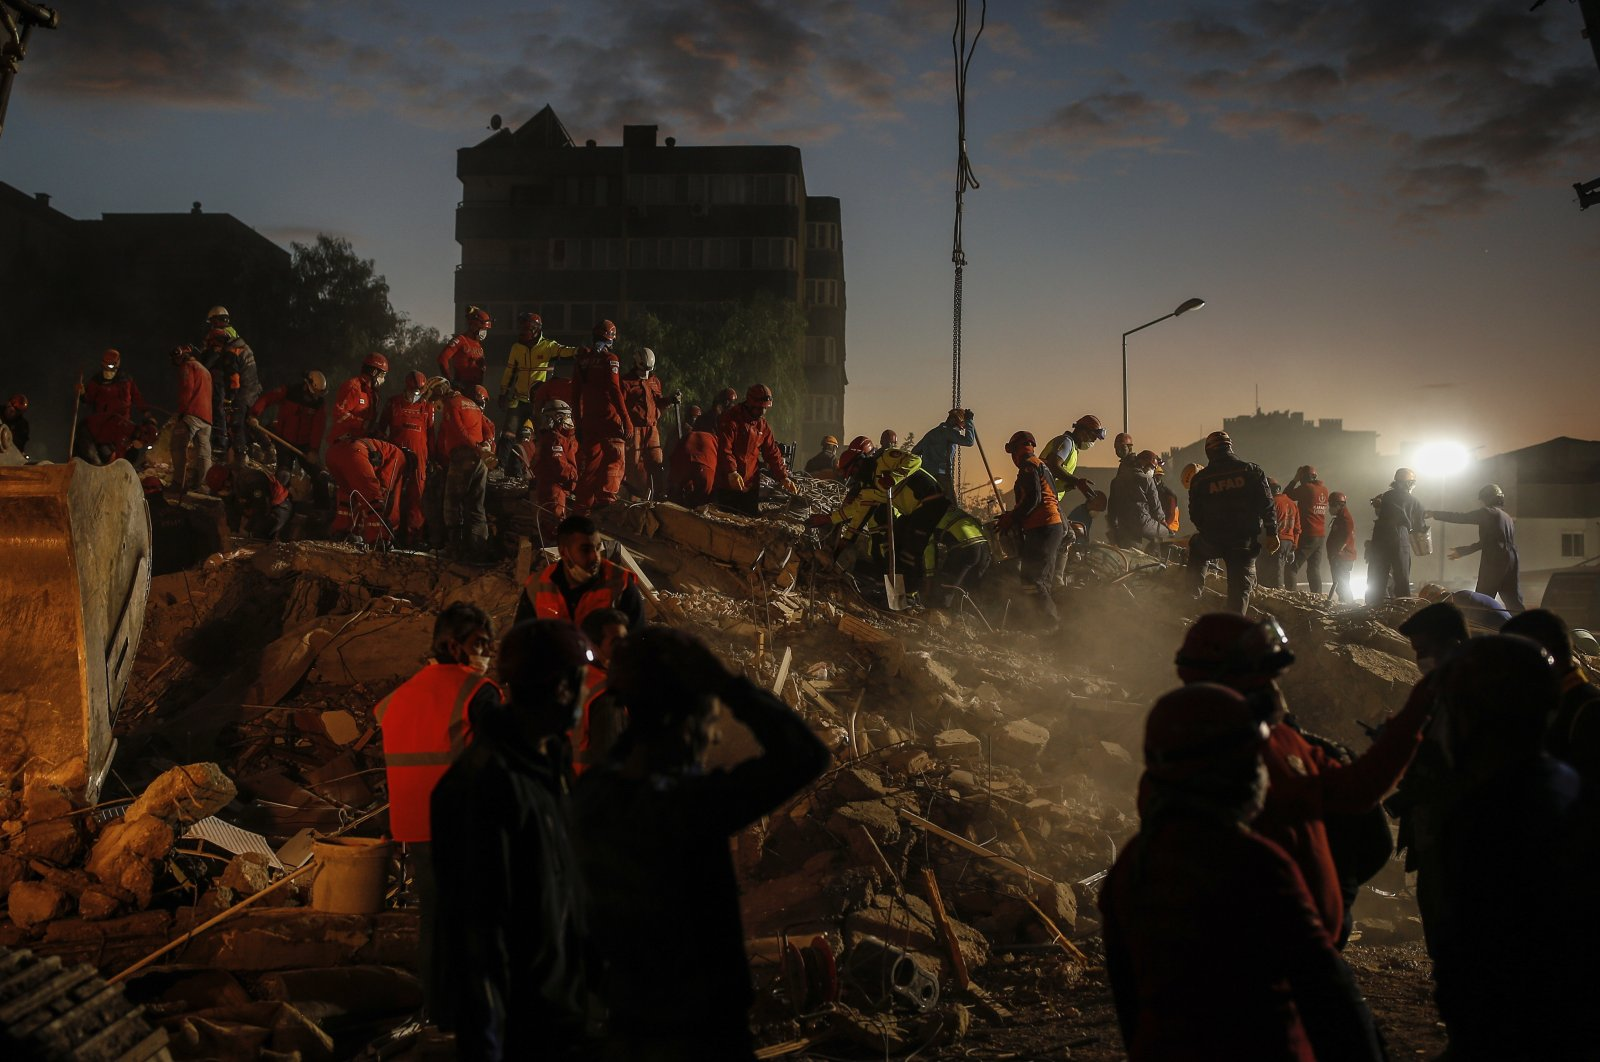 Members of rescue services search for survivors in the debris of a collapsed building in Izmir, Turkey, Nov. 2, 2020. (AP Photo)